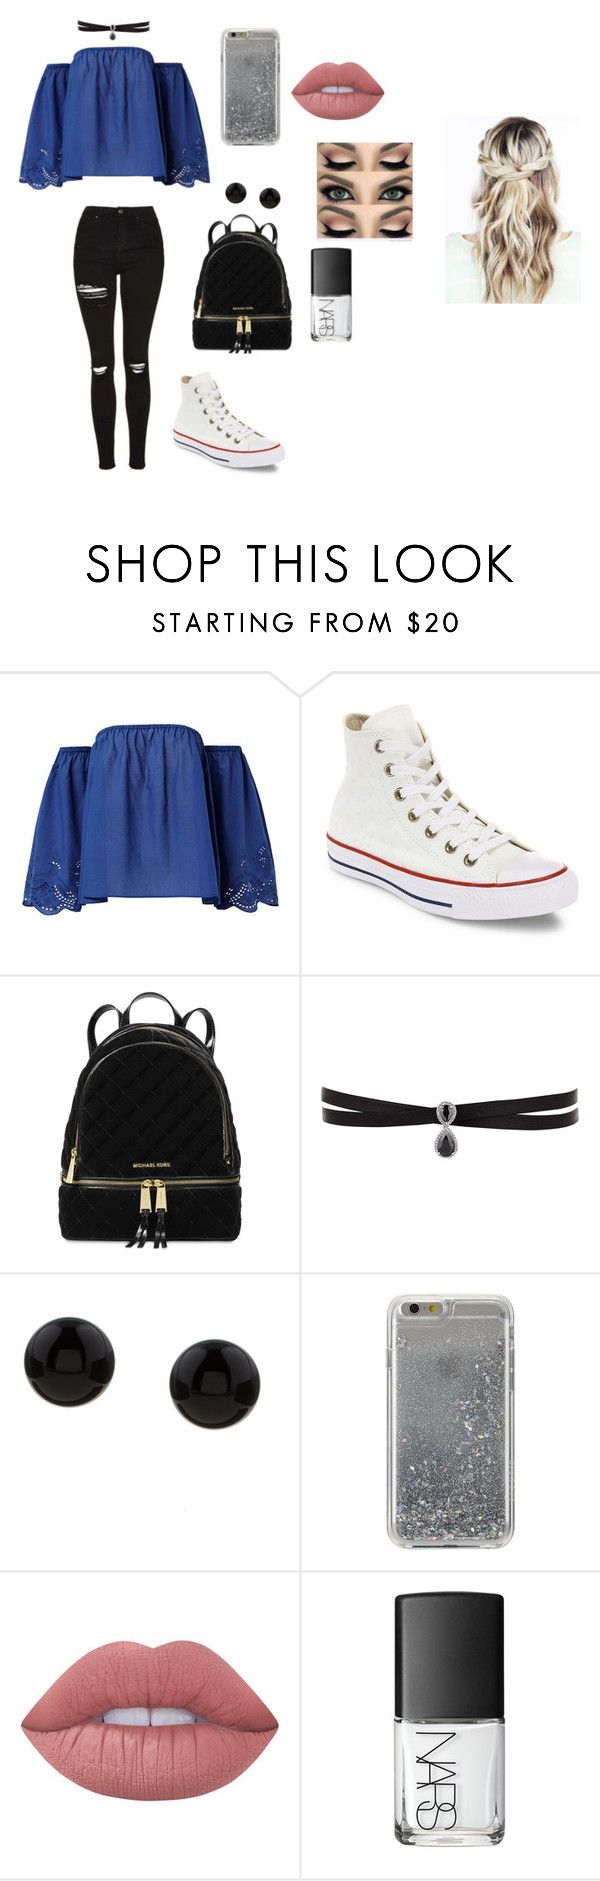 """casual"" by arisofia on Polyvore featuring moda, Converse, Michael Kors, Fallon, Kabella Jewelry, Agent 18, Lime Crime y NARS Cosmetics"